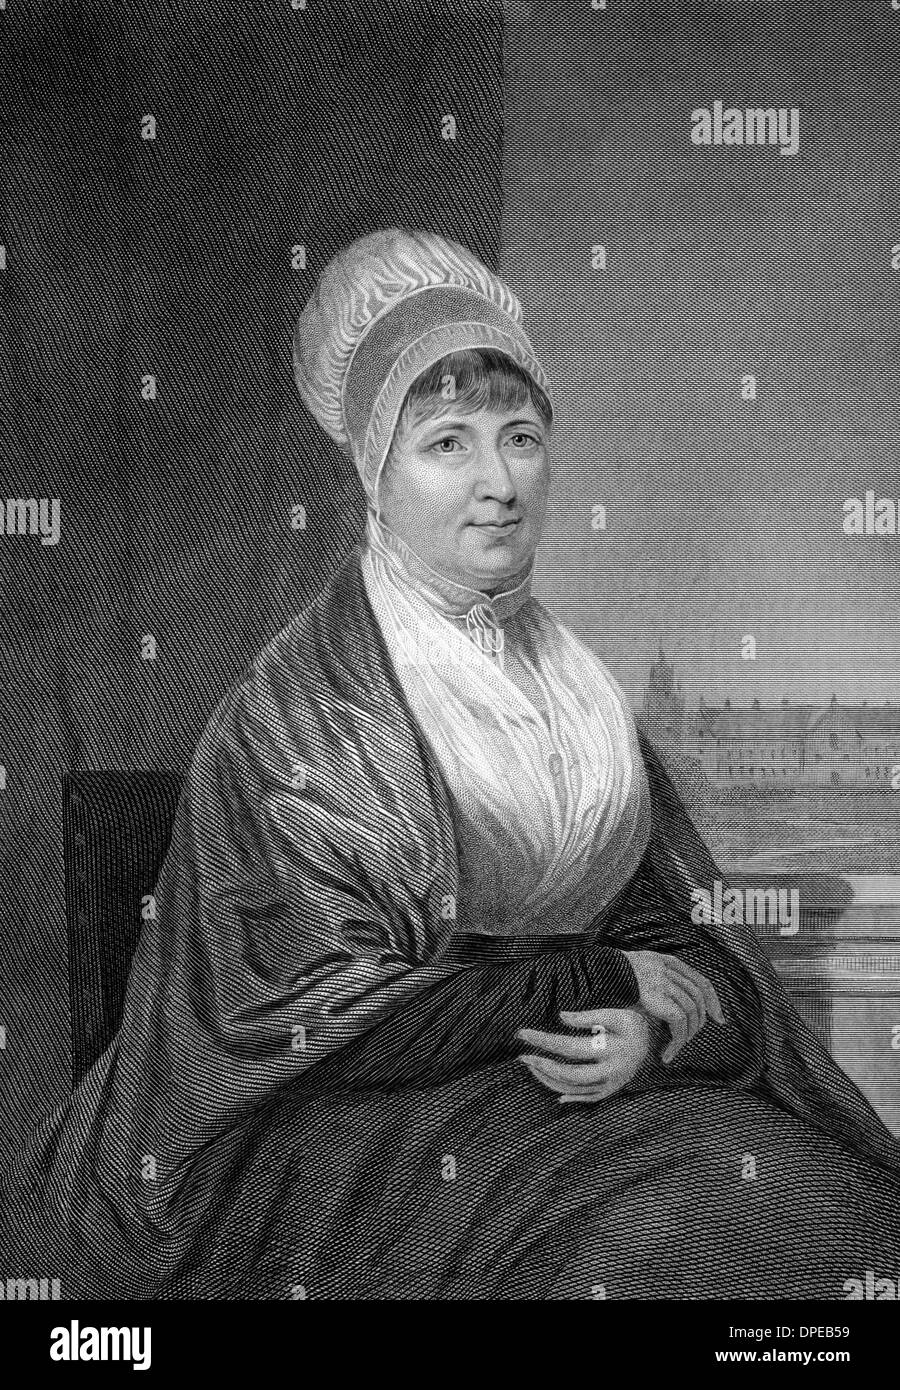 Elizabeth Fry (1780-1845) on engraving from 1873. English prison reformer, social reformer and Christian philanthropist. Stock Photo